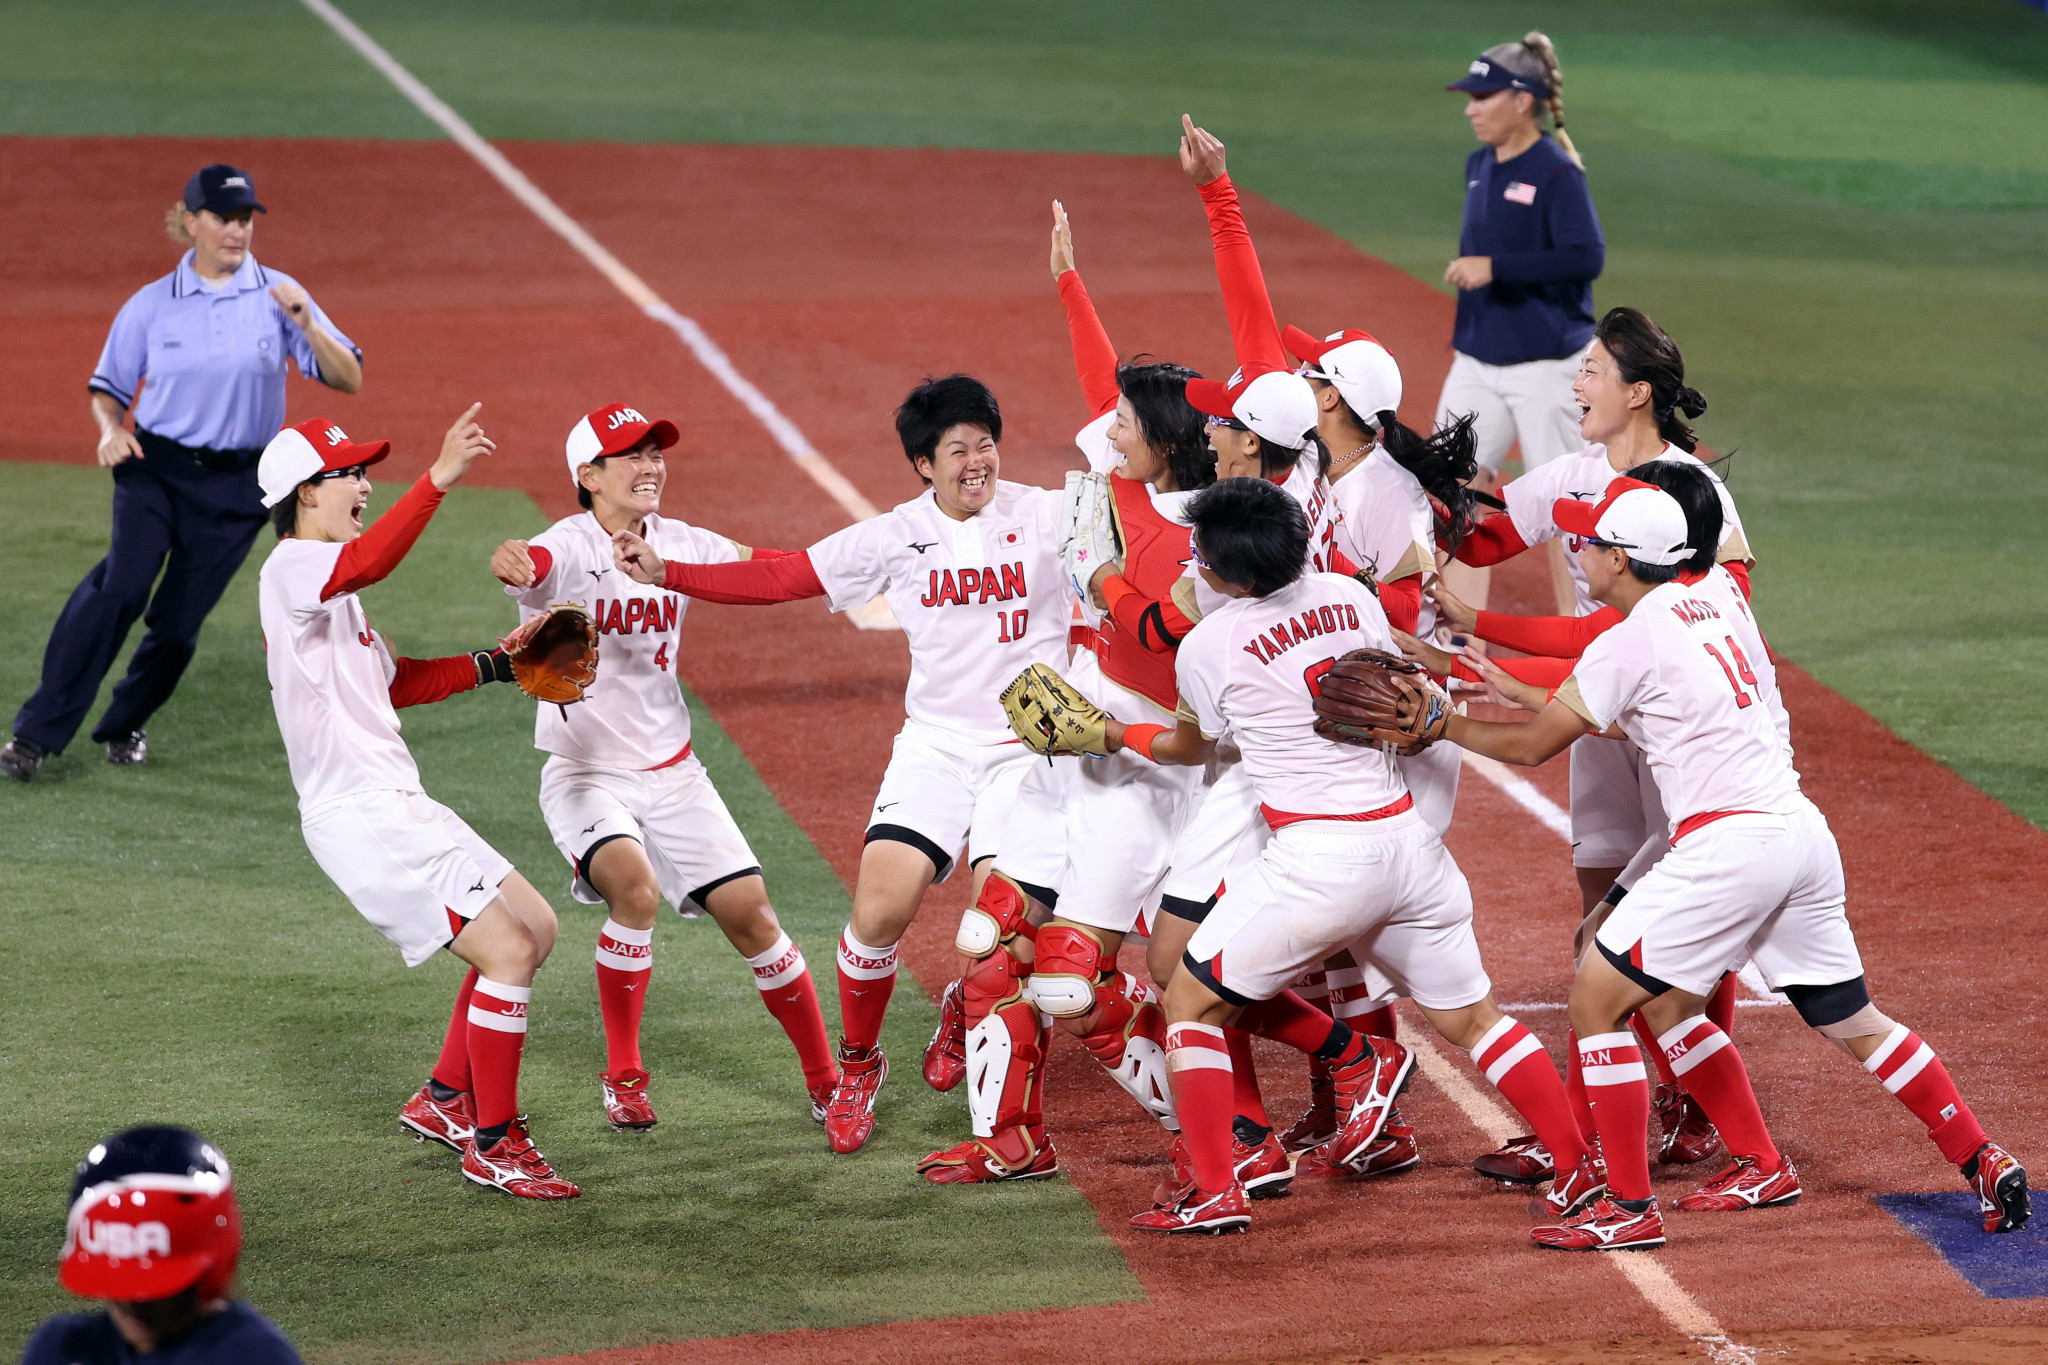 Japan won one the medals the host nation most coveted, beating the United States 2-0 in the softball final ©Getty Images